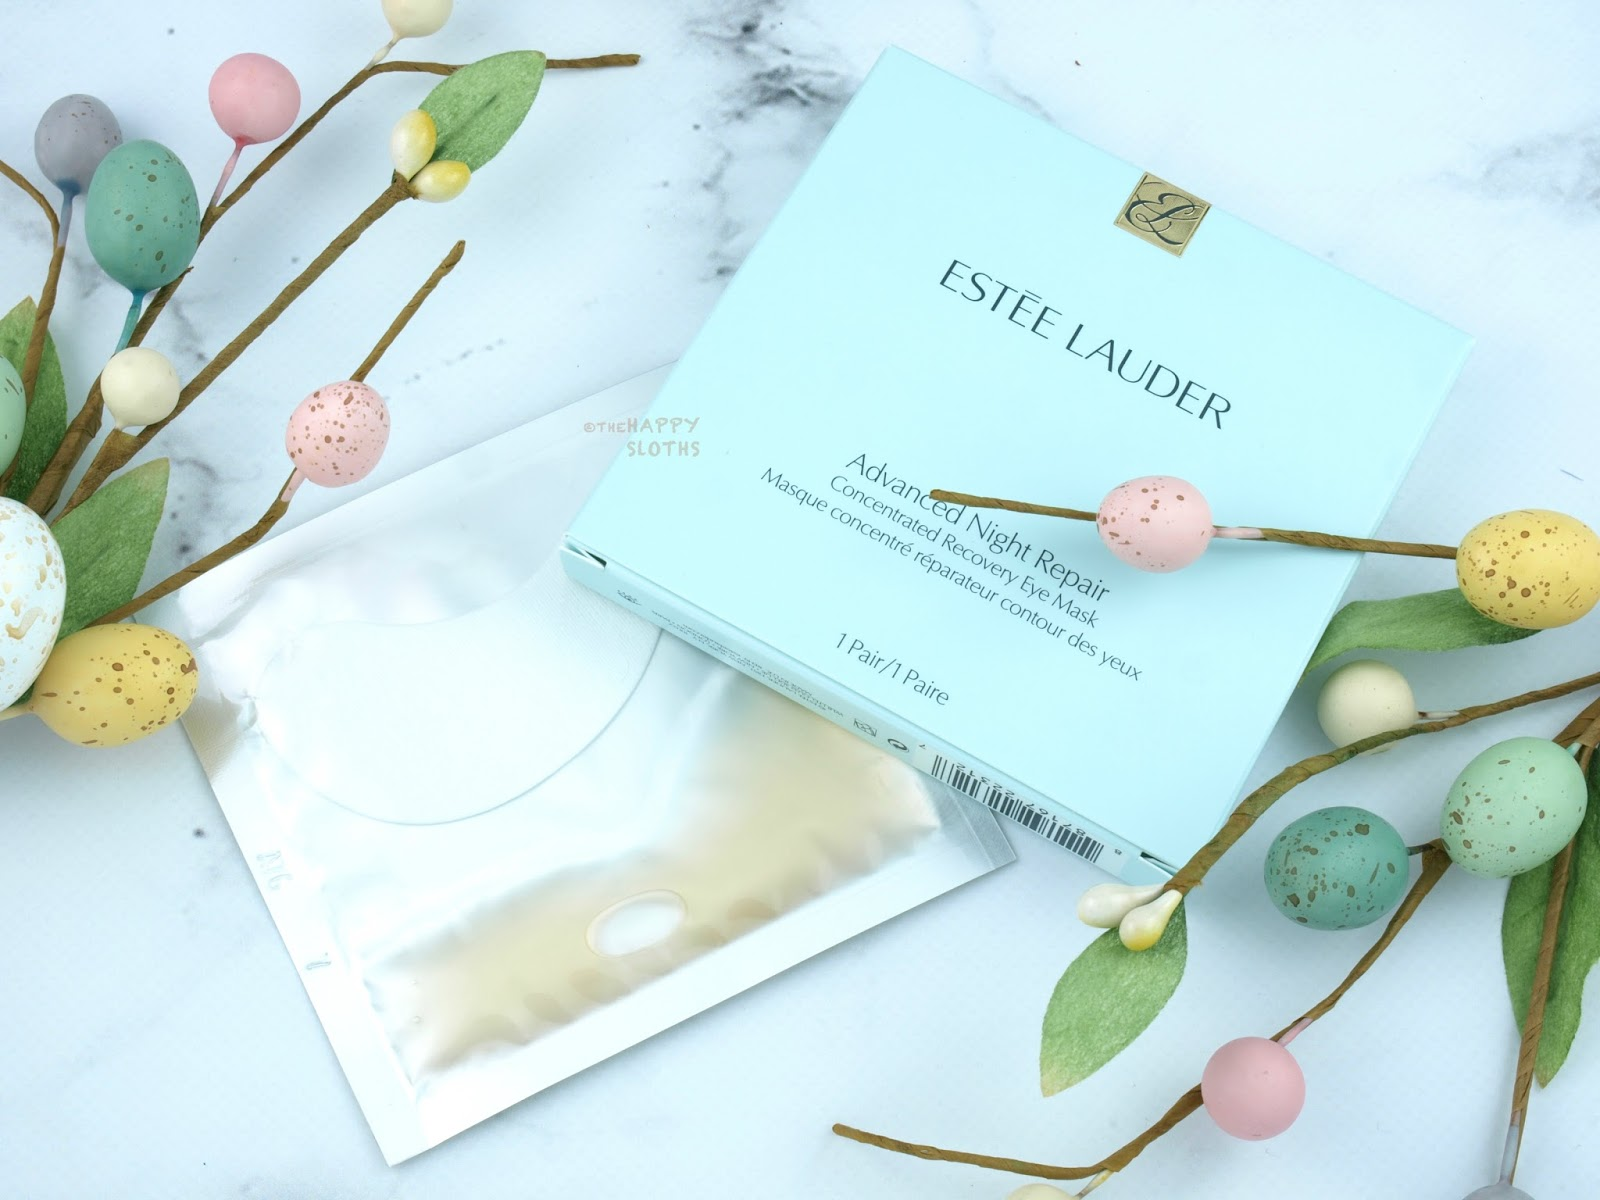 Estee Lauder Advanced Night Repair Concentrated Recovery Eye Mask: Review